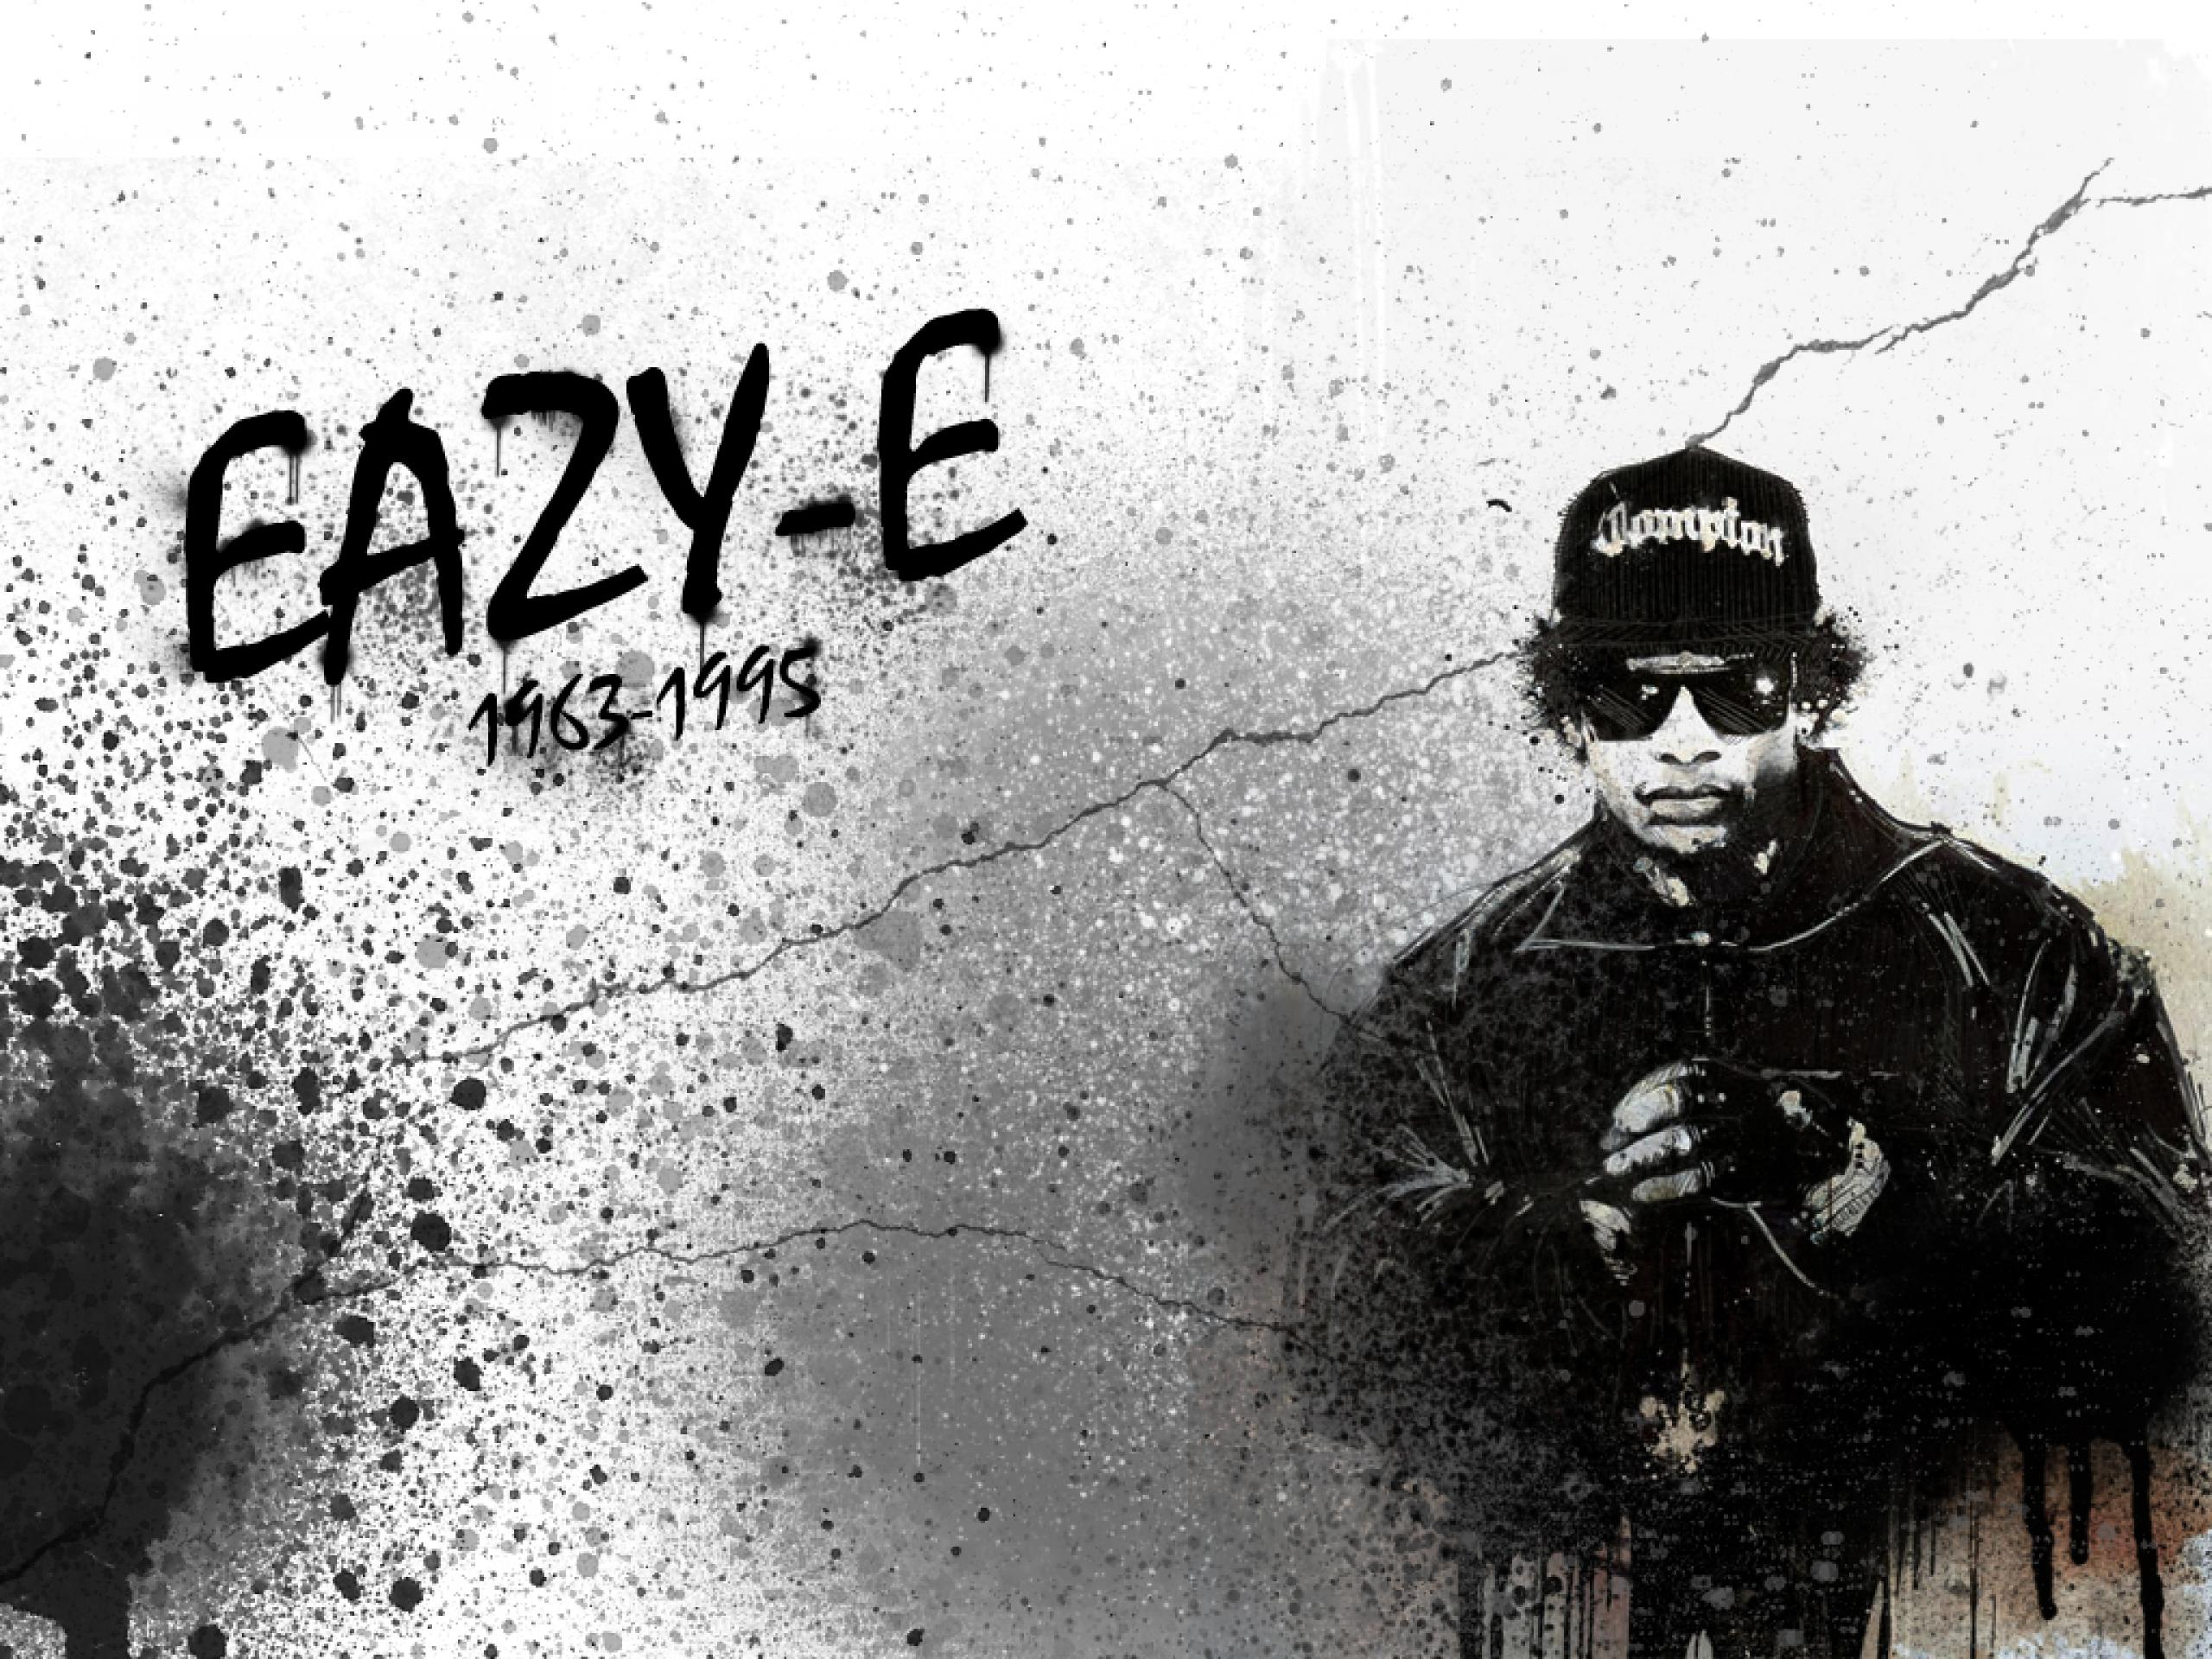 Eazy E Wallpapers 53BN18R 063 Mb   4USkY 2560x1920